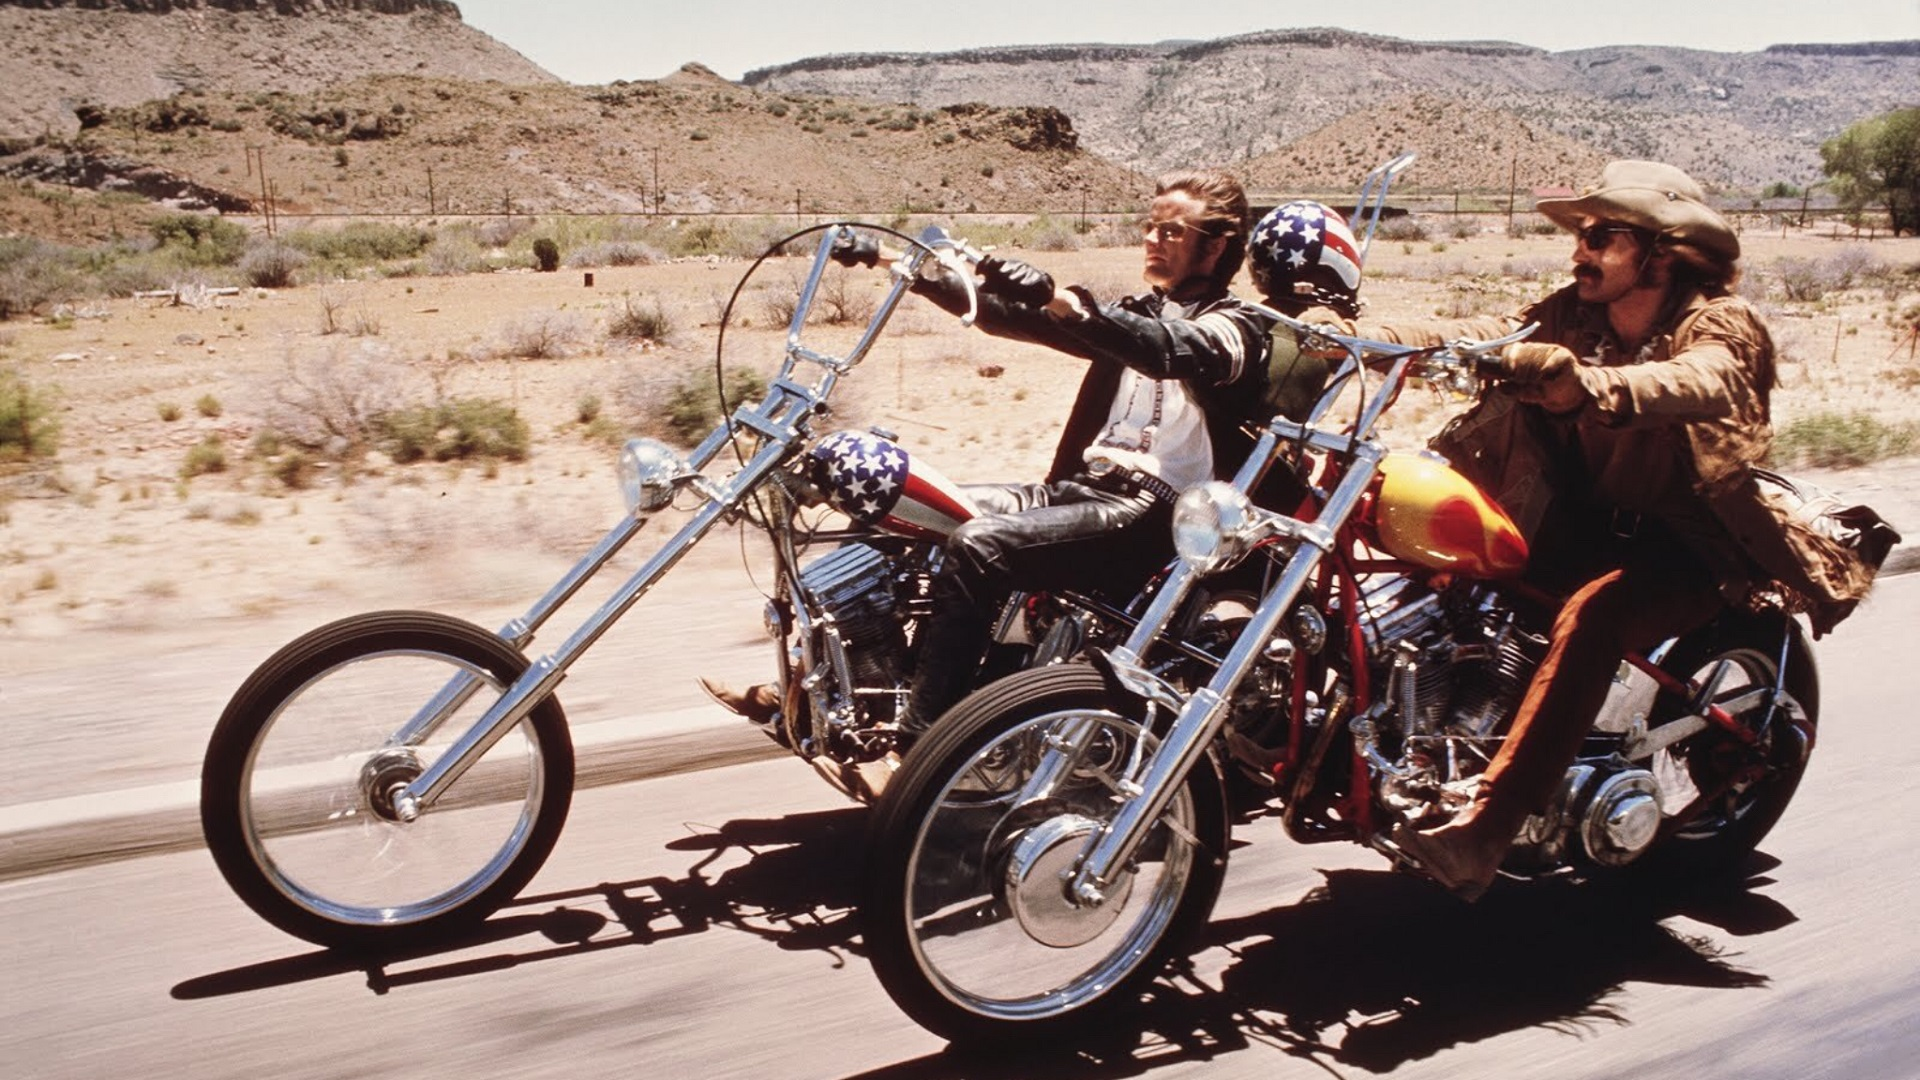 Ride On: The Most Memorable Motorcycles In Films